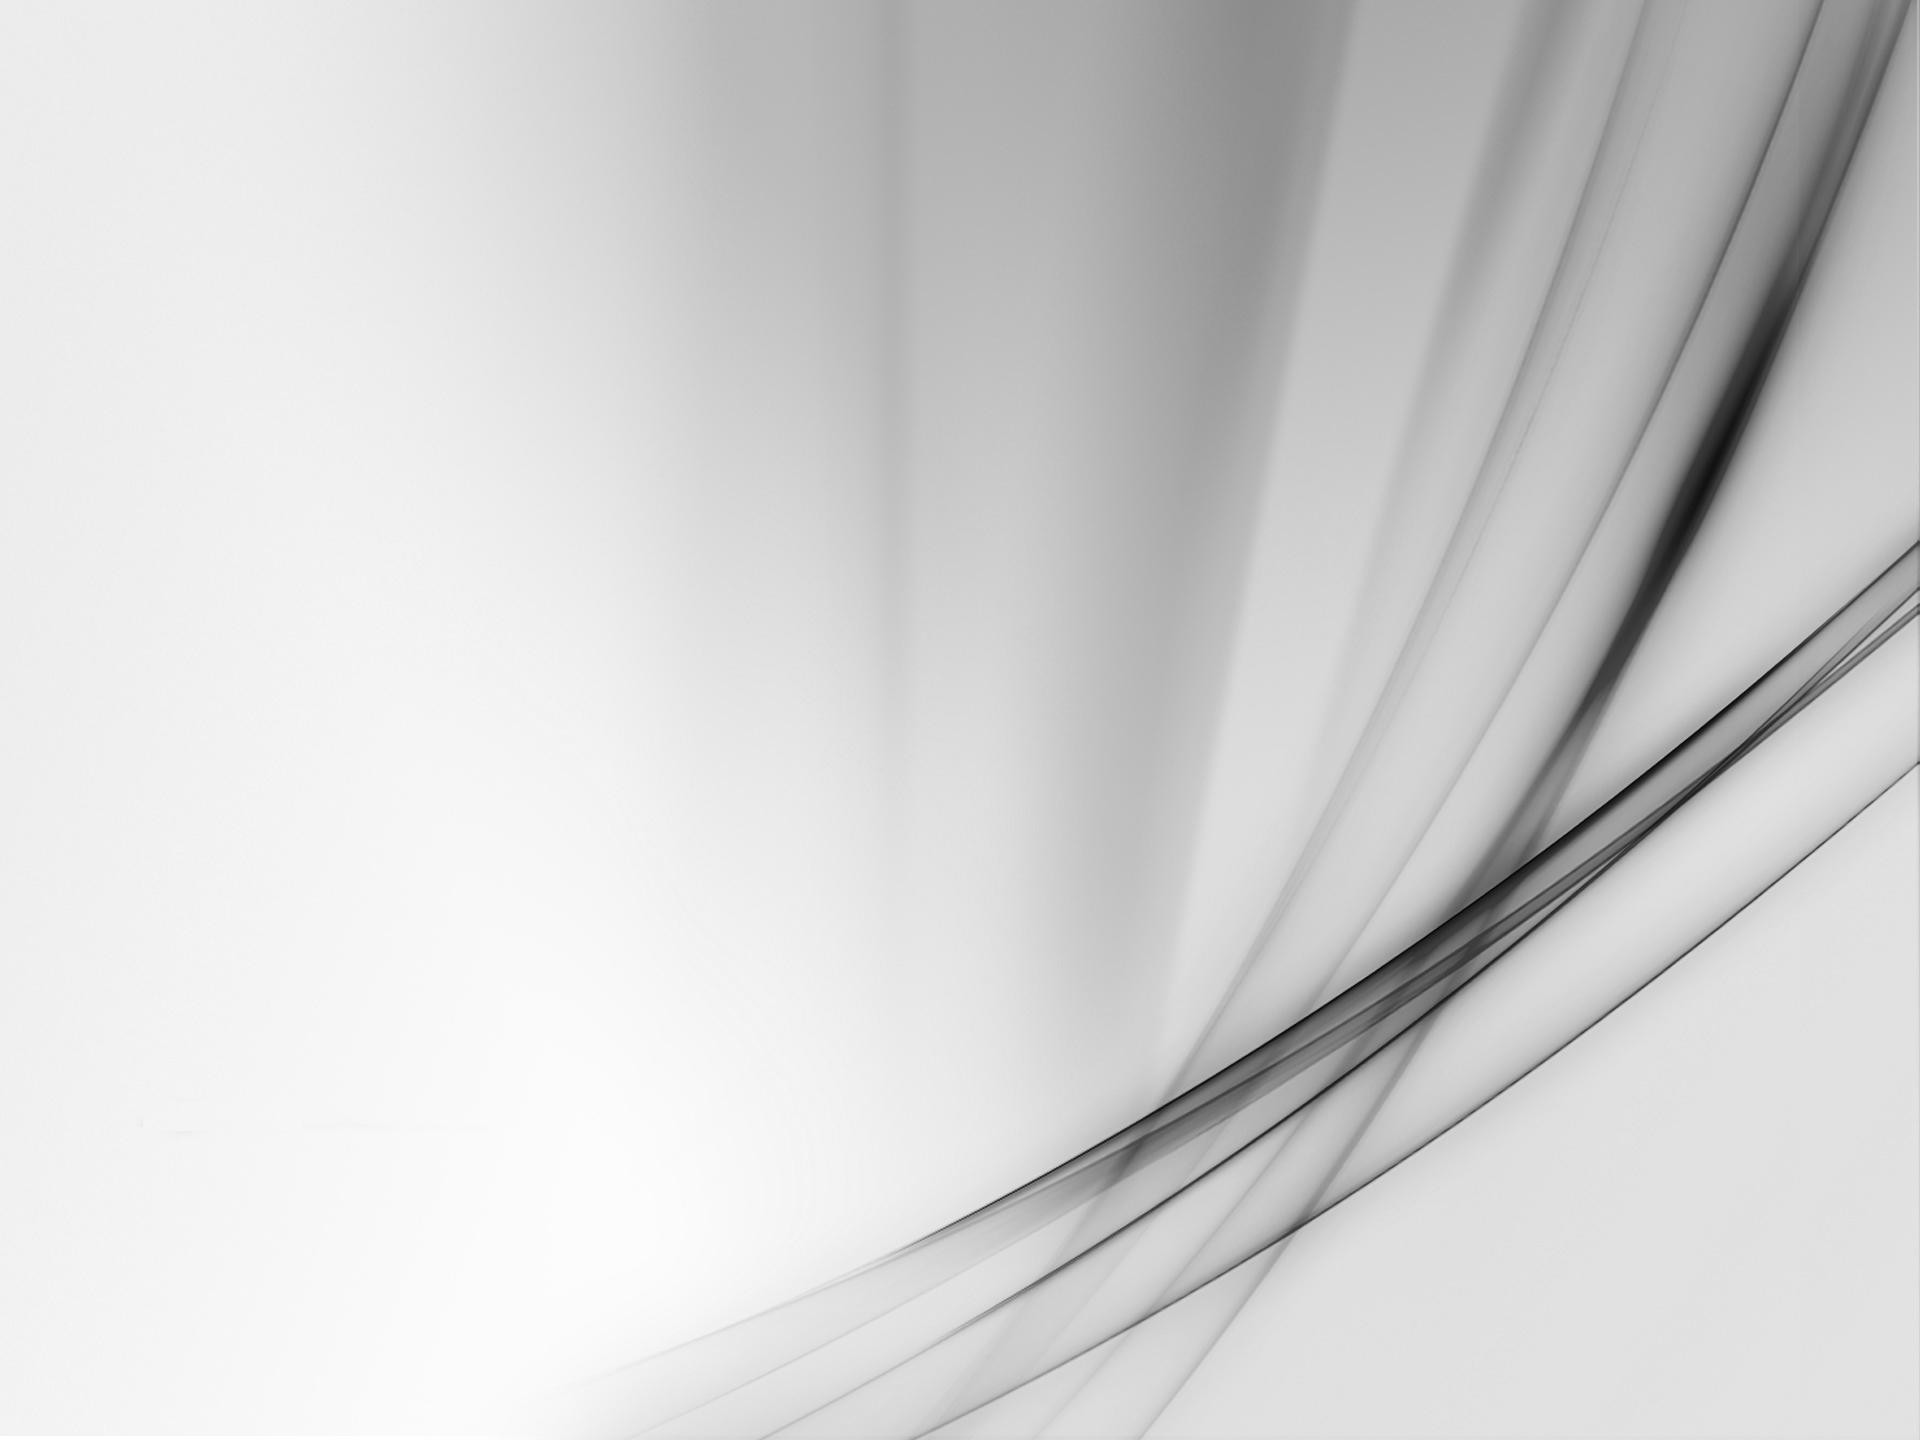 Plain White Wallpapers HD (66+ images)